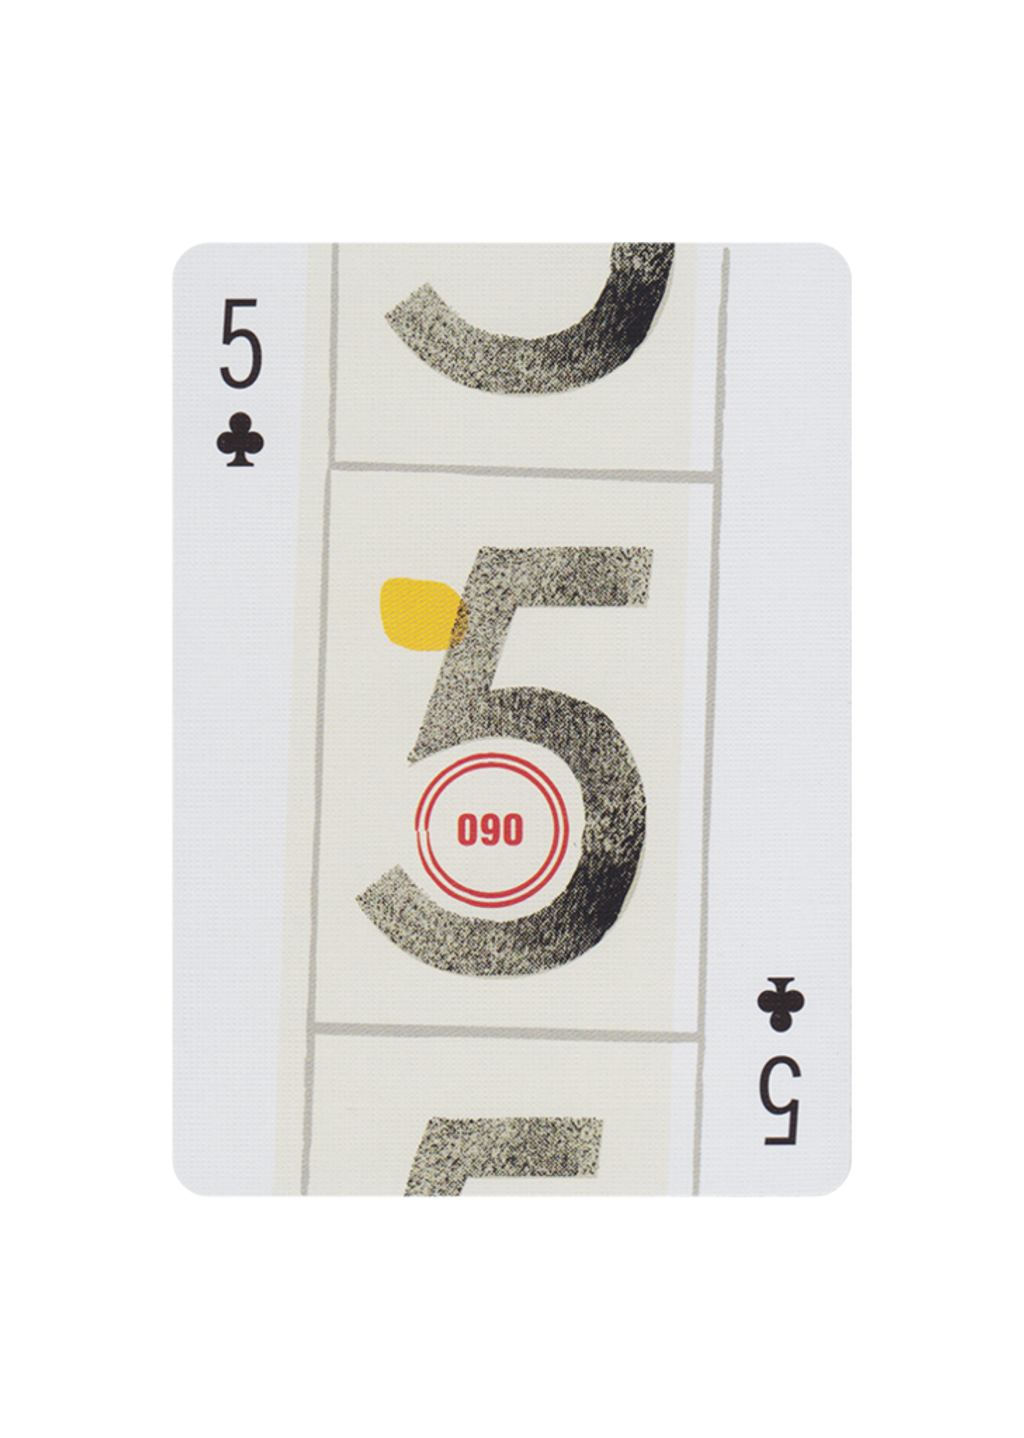 0001_art-machine-playing-cards_0001_five-clubs_1024x1024.png